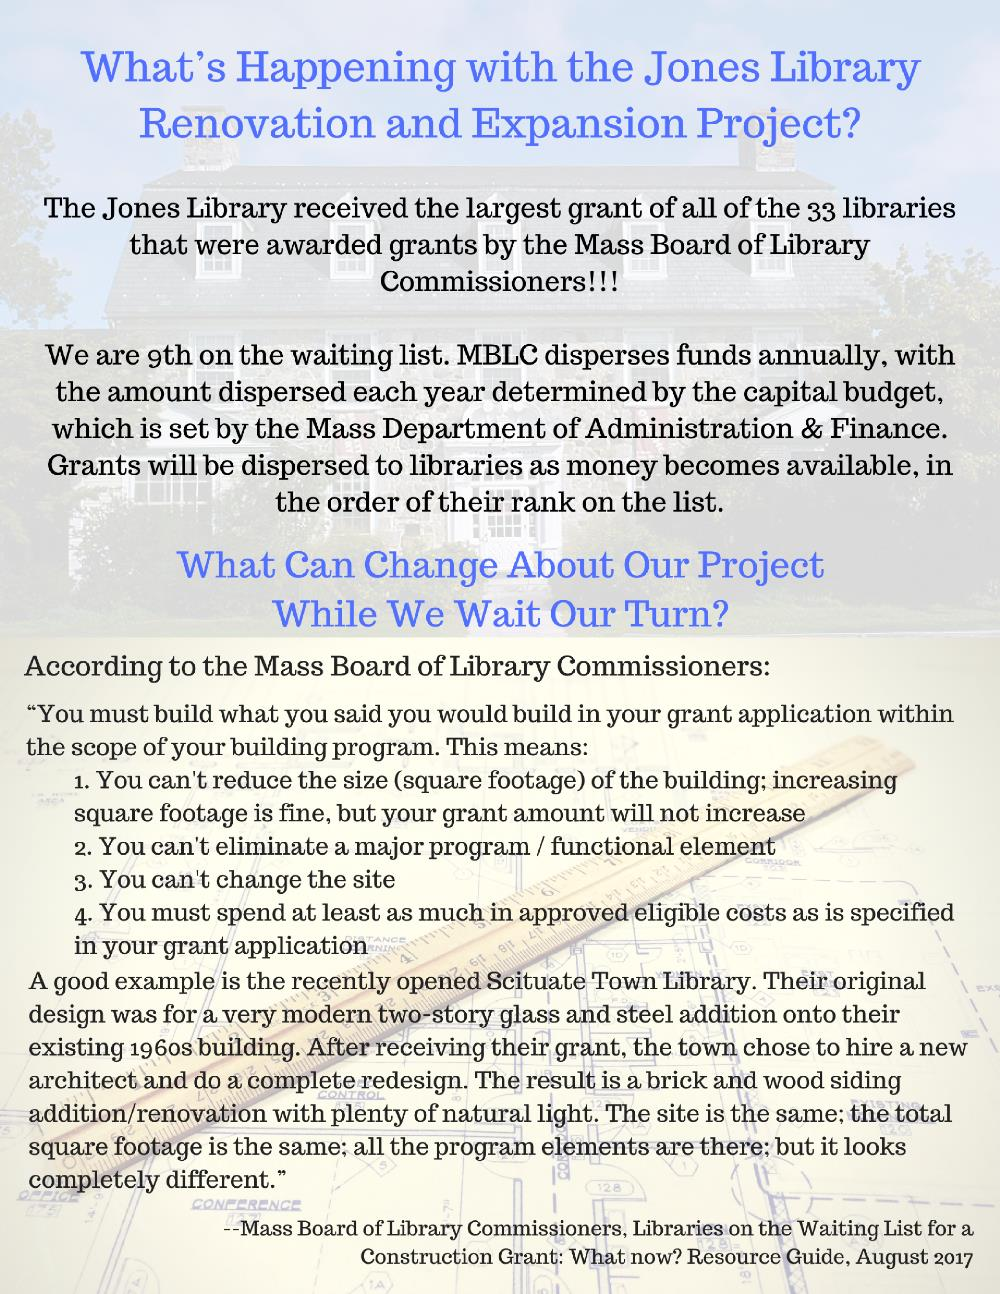 What's Happening with the Jones Library Renovation and Expansion Project?